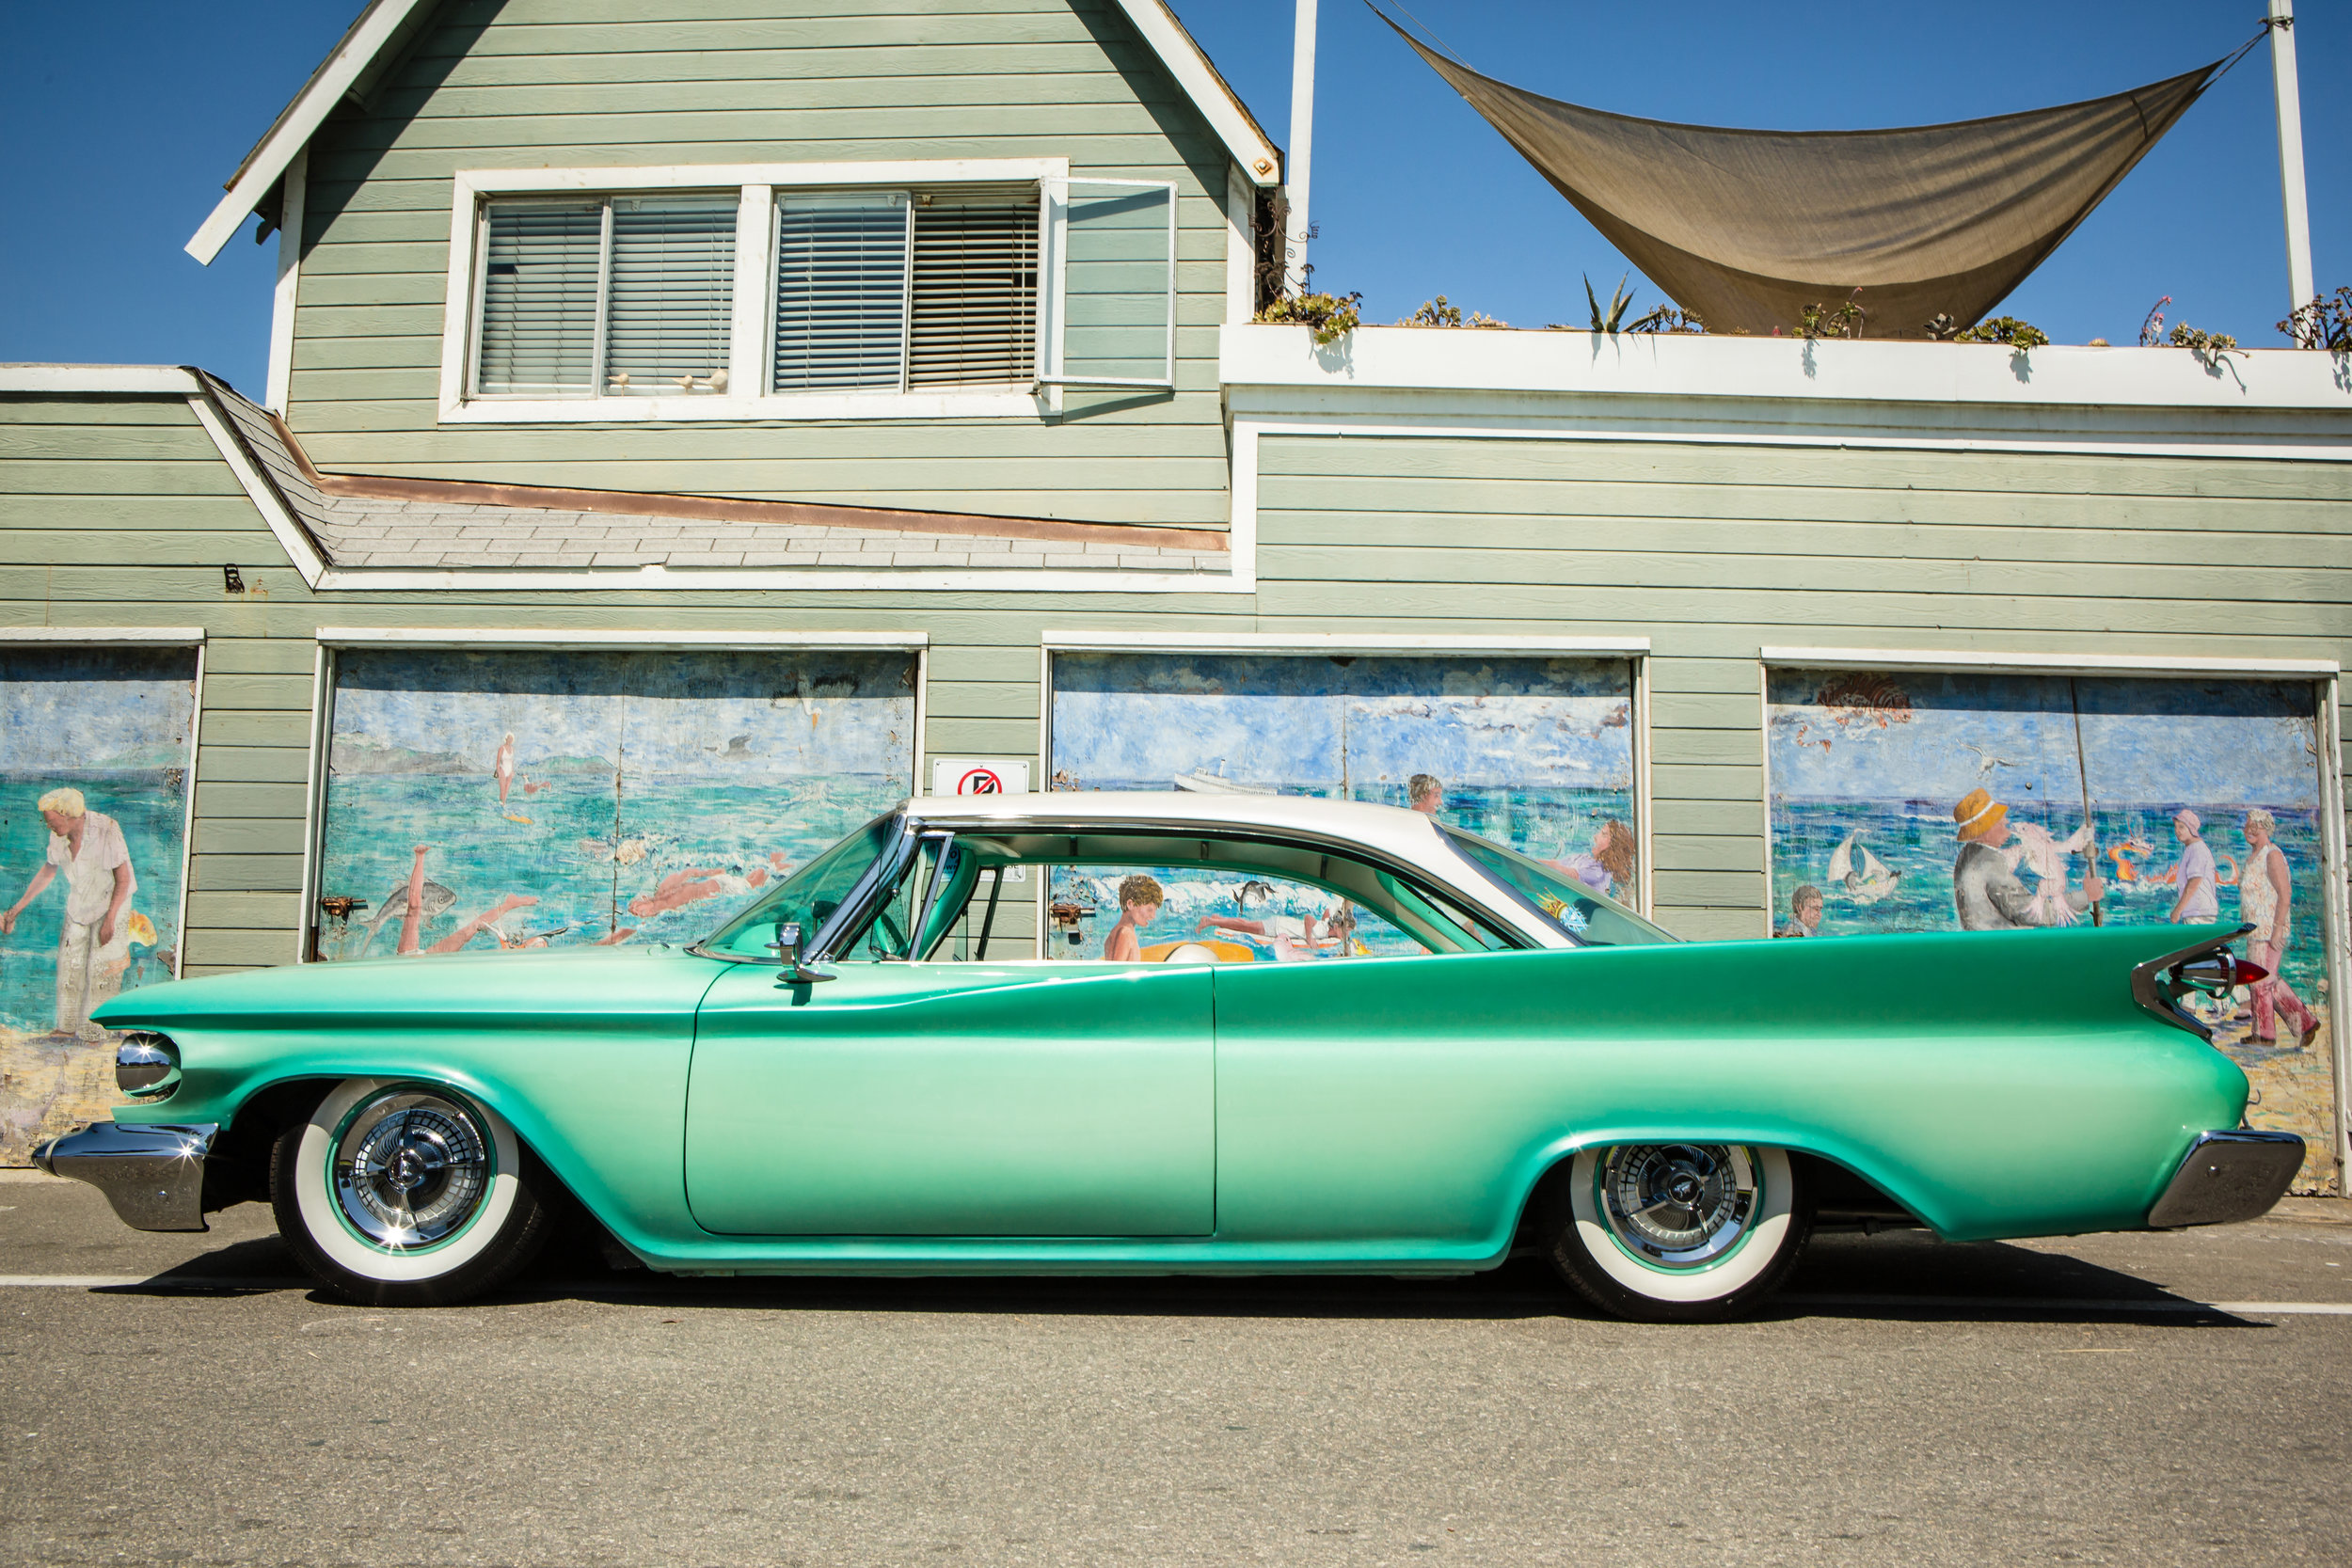 Anaheim Rod and Custom 1960 Desoto Island Girl_-10.jpg